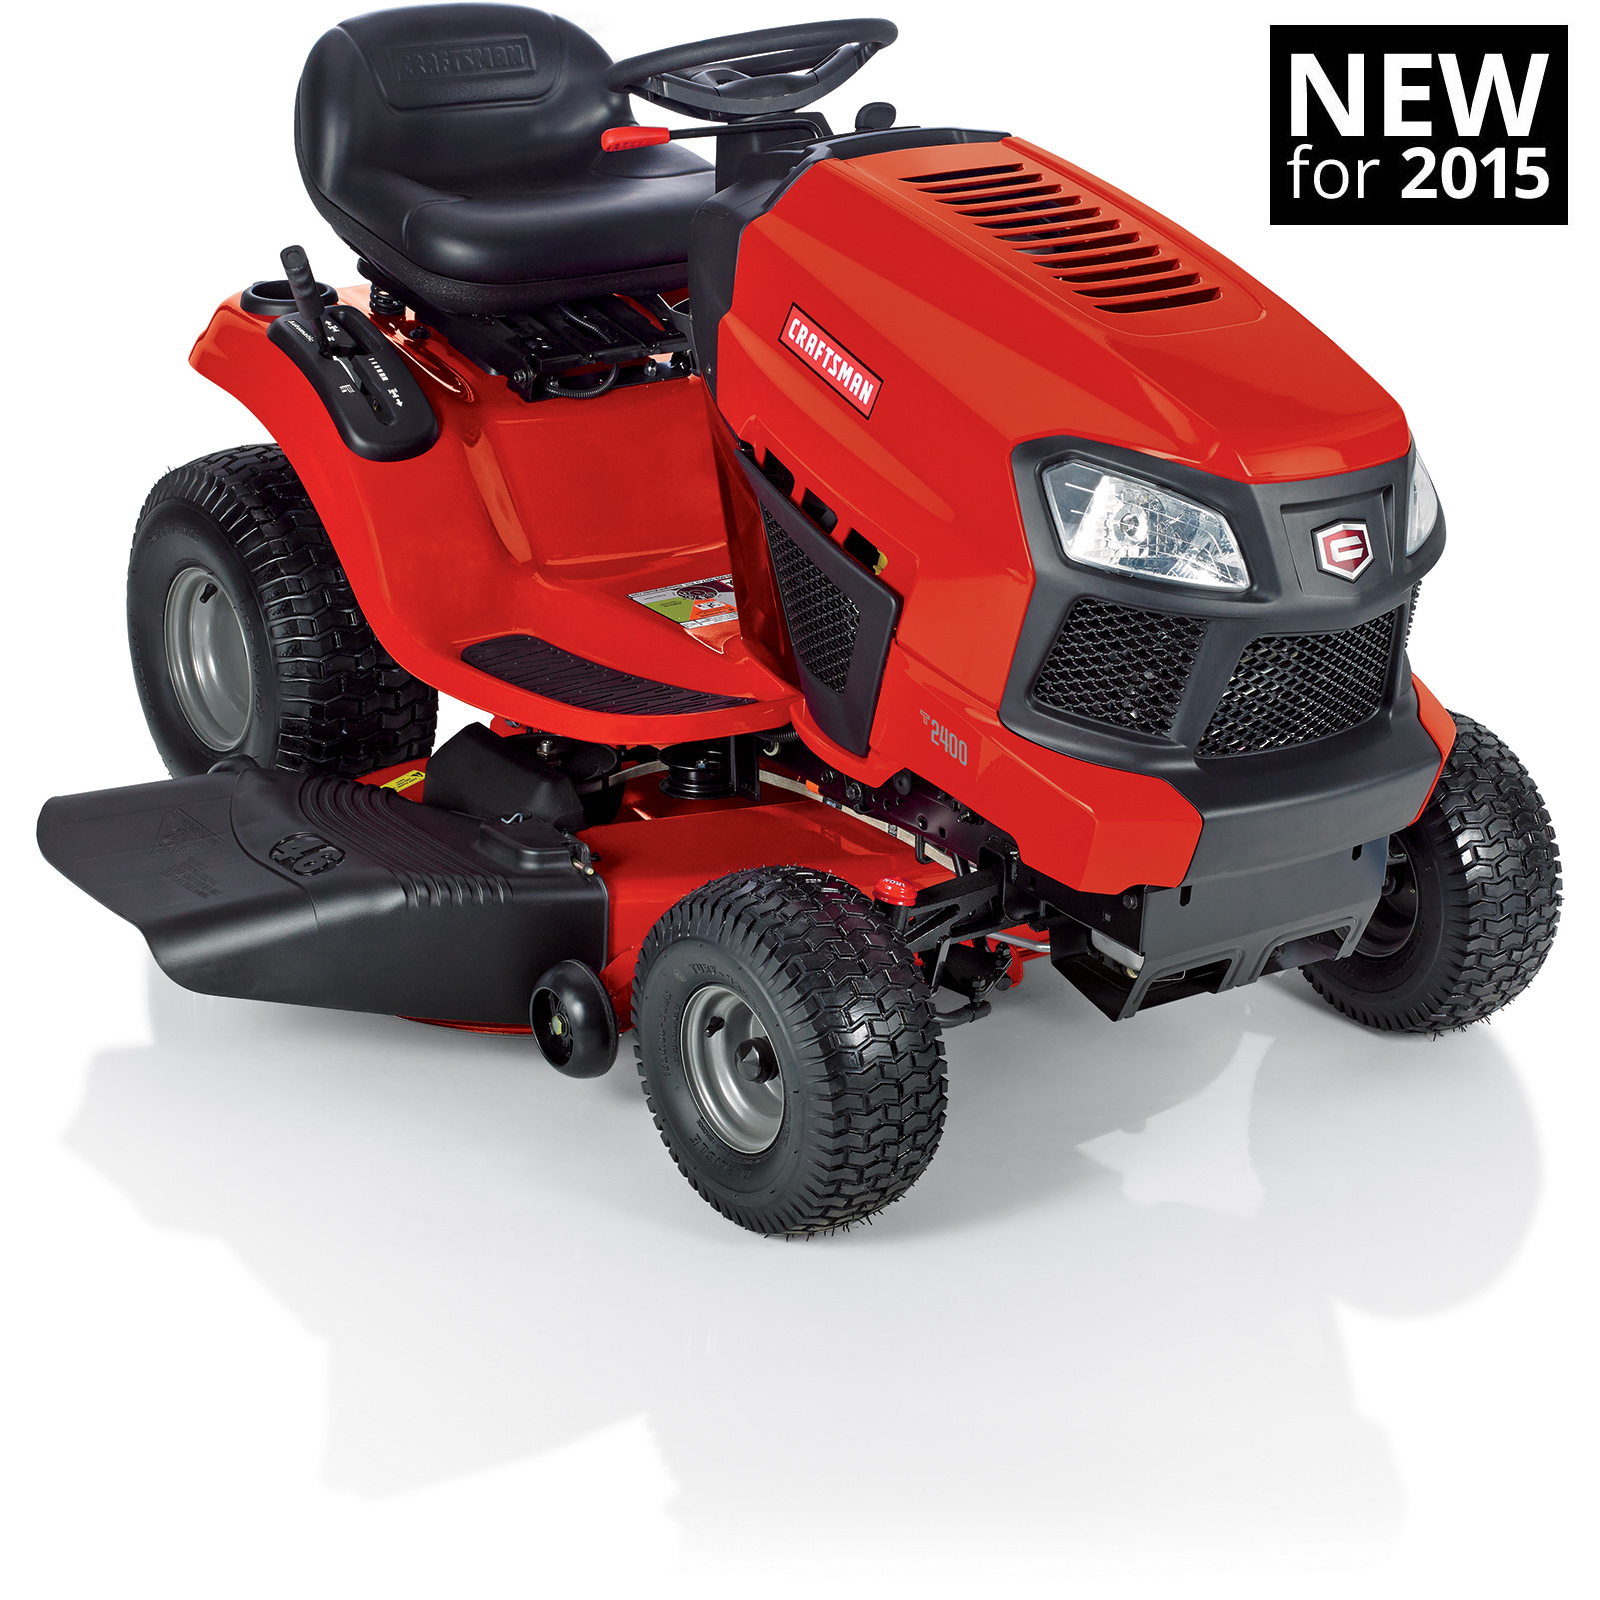 riding lawn mowers in canada generator wiring diagram and electrical schematics mower